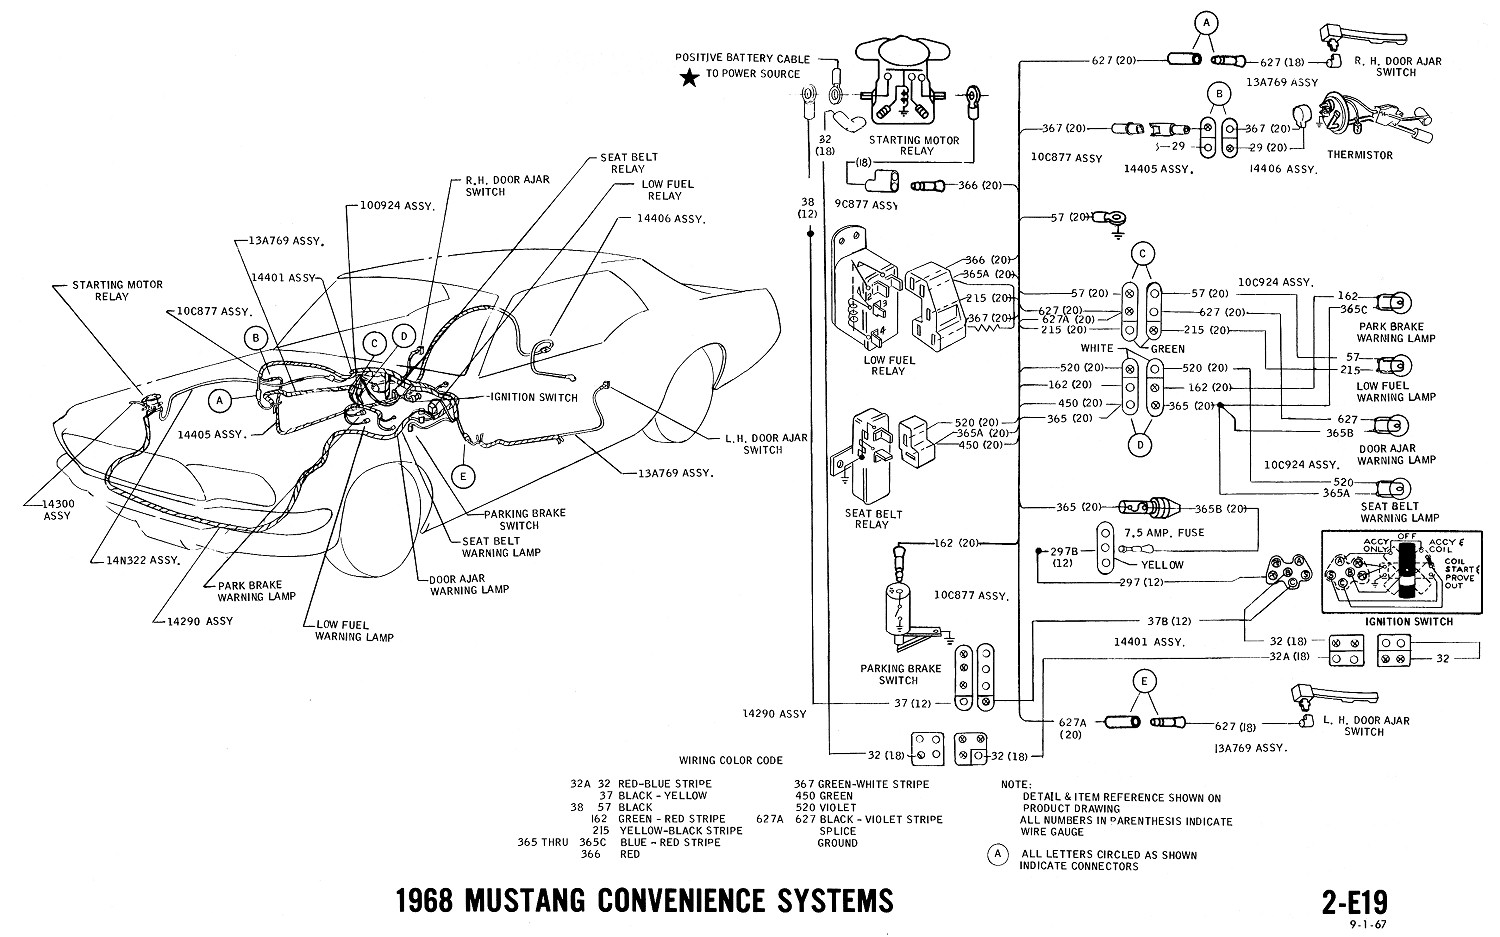 Ford Territory Wiring Diagram on ford schematics, ford engine diagrams, ford wire harness repair, ford hvac diagram, 1931 ford model a diagrams, ford maintenance schedule, ford alternator diagrams, ford exploded view diagrams, ford wiring harness, ford relay diagrams, ford distributor diagrams, ford electrical diagrams, ford wiring color codes, ford regulator diagram, ford wiring parts, ford trim diagrams, chevy s10 front diagrams, ford stereo wiring, ford parts diagrams, ford wire diagrams,